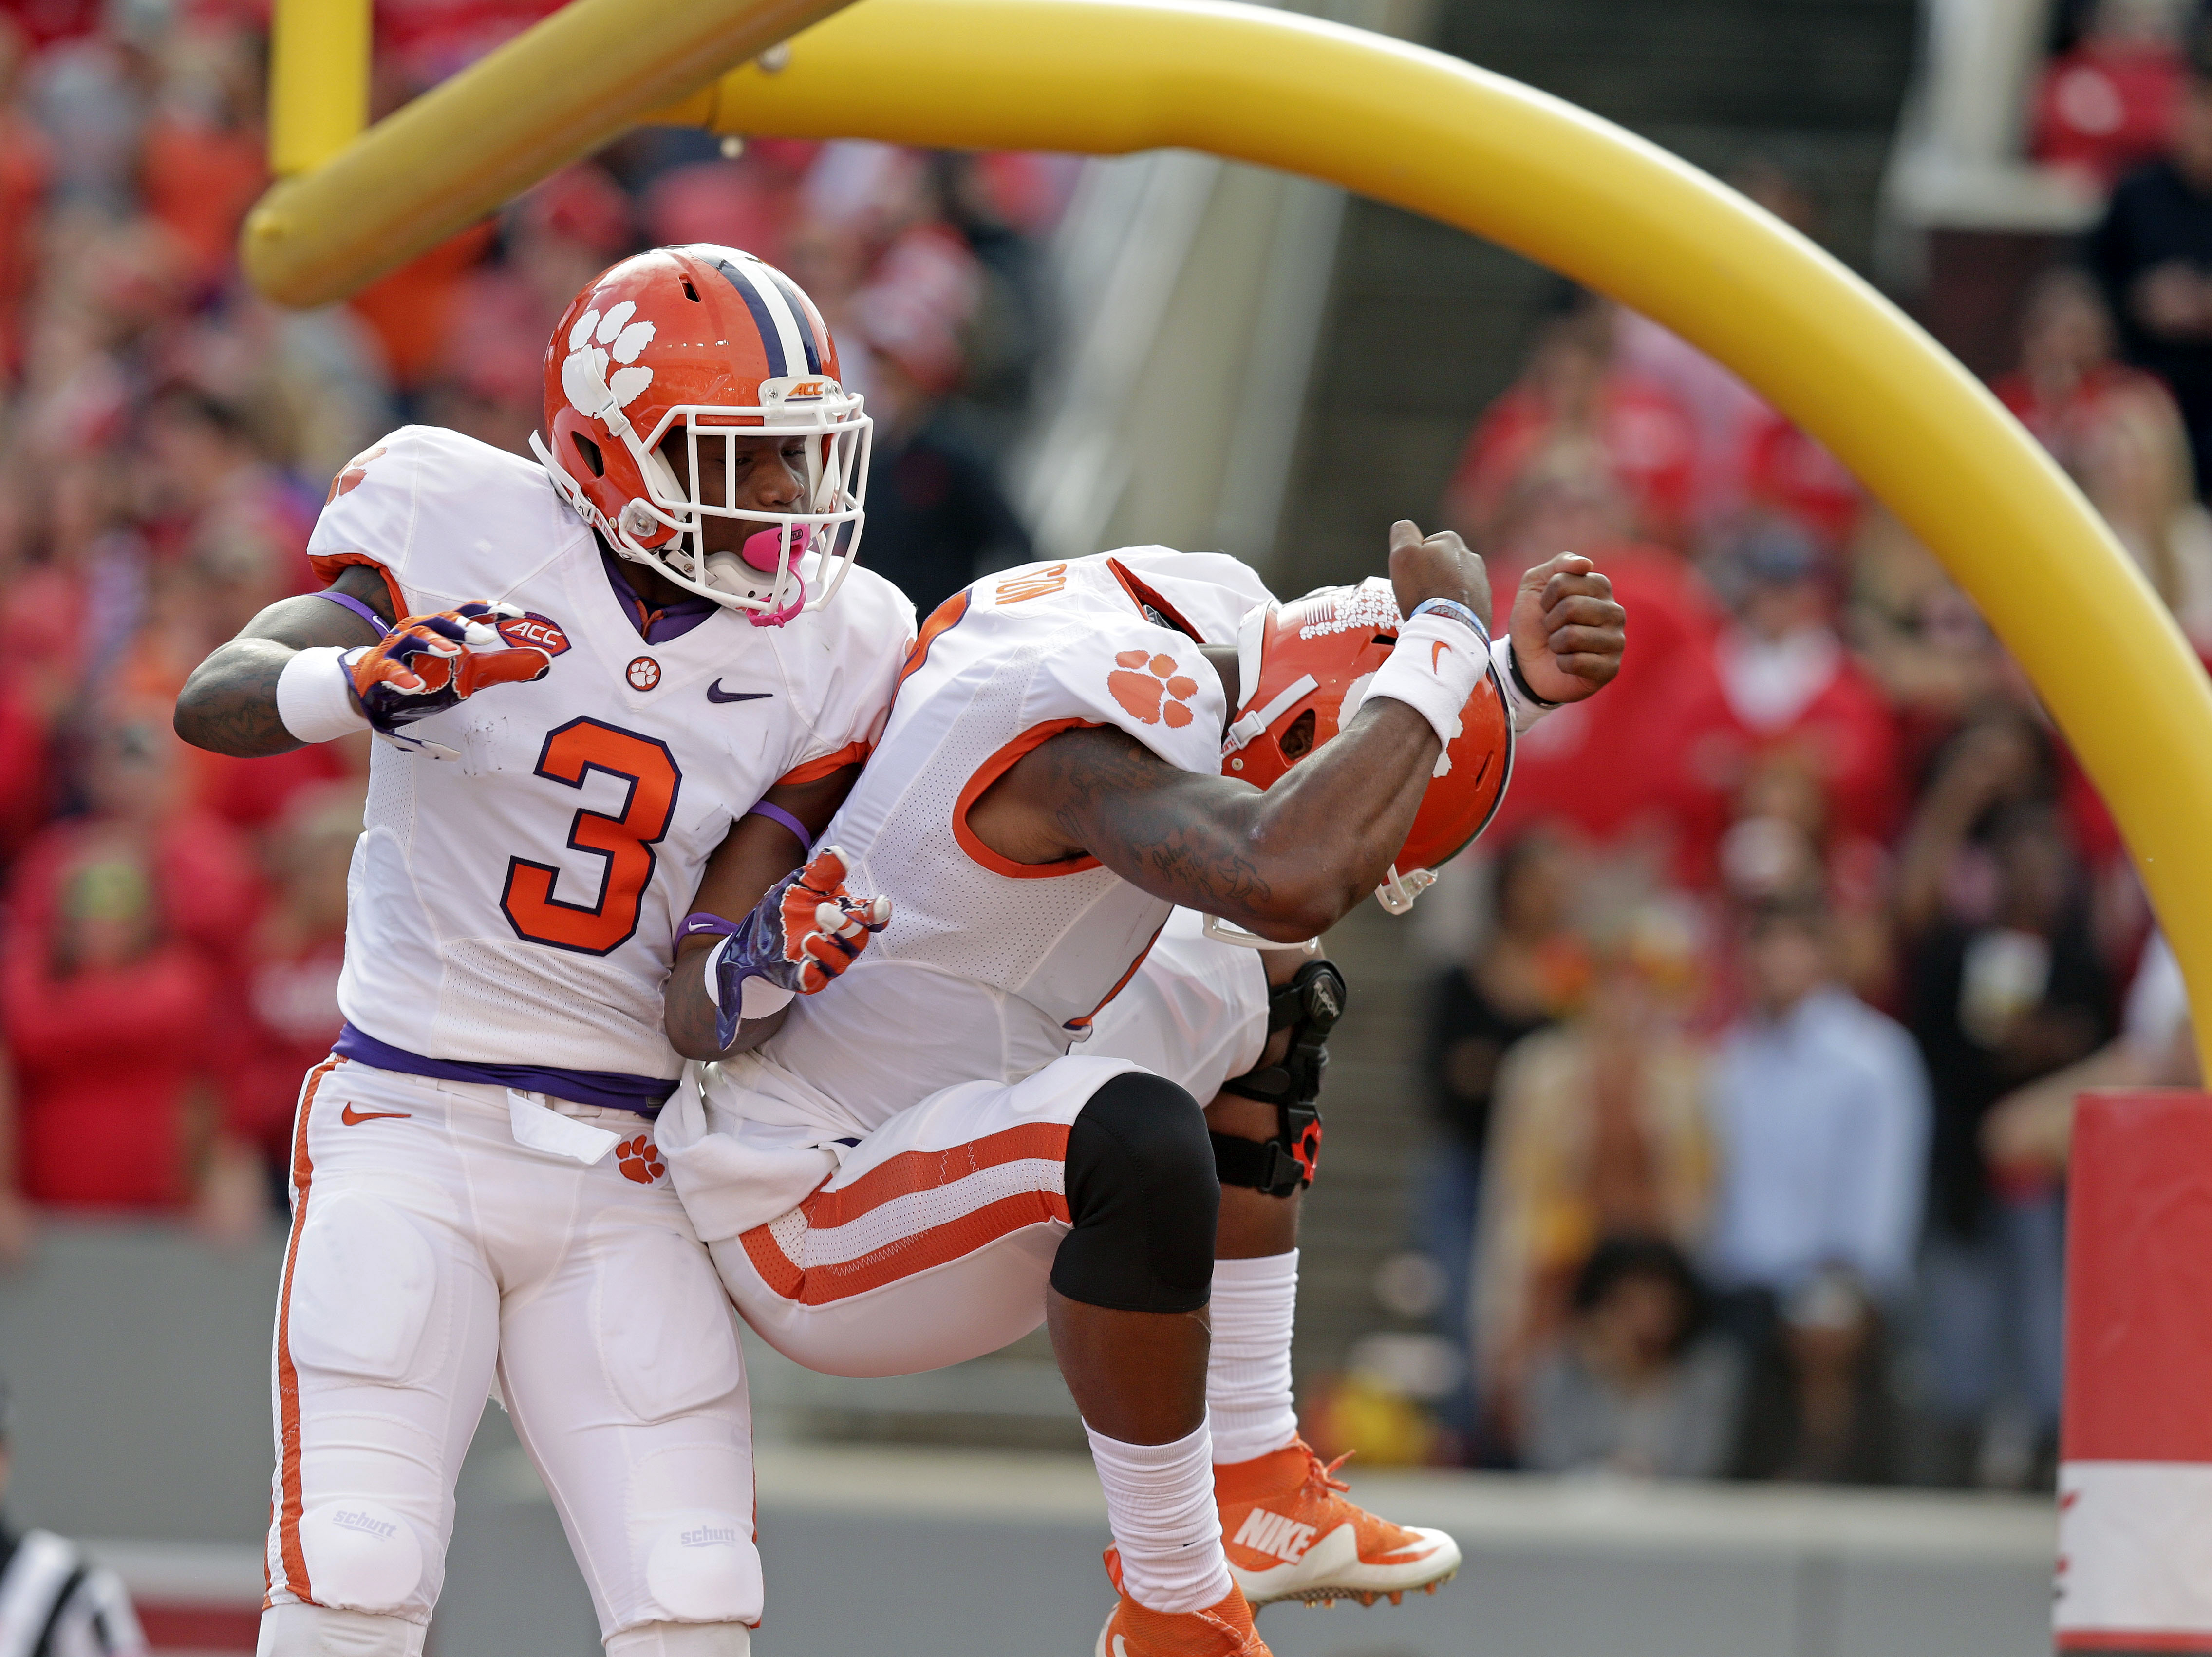 Clemson's Artavis Scott (3) and quarterback Deshaun Watson celebrate Watson's touchdown against North Carolina State during the first half of an NCAA college football game in Raleigh, N.C., Saturday, Oct. 31, 2015. Clemson won 56-41. (AP Photo/Gerry Broom